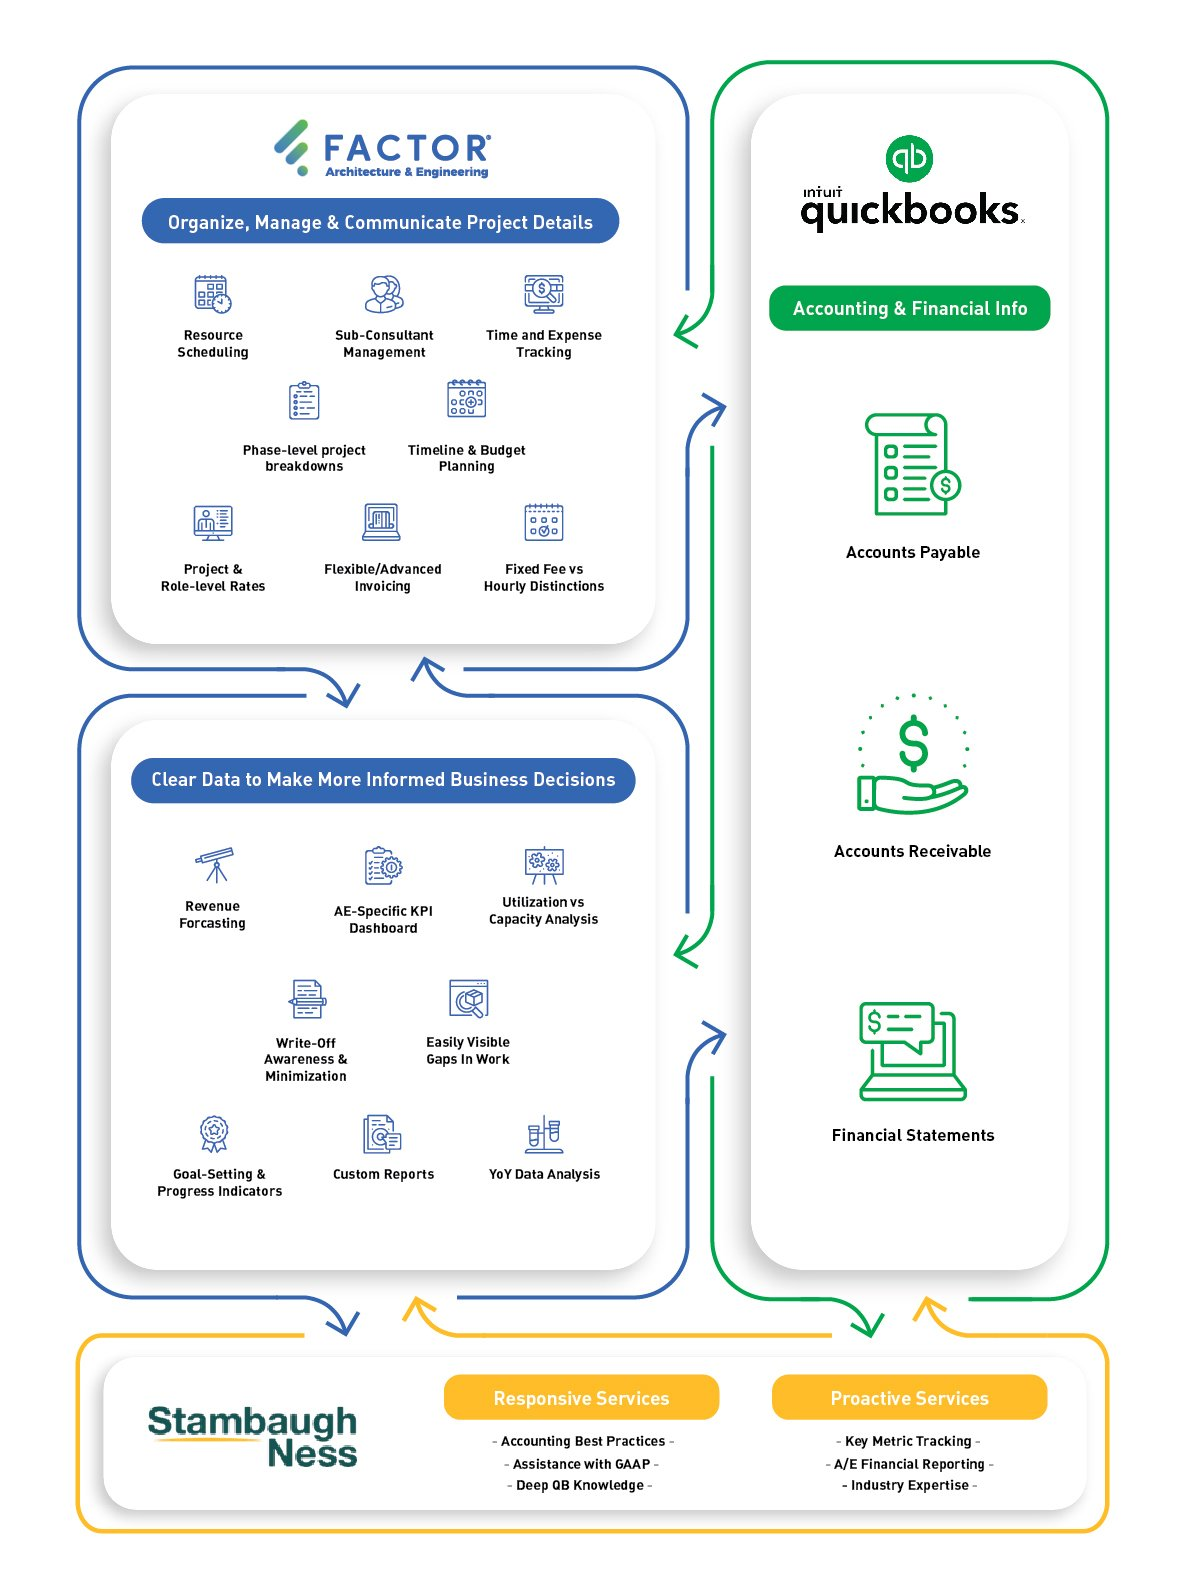 How Factor Works With QuickBooks Infographic